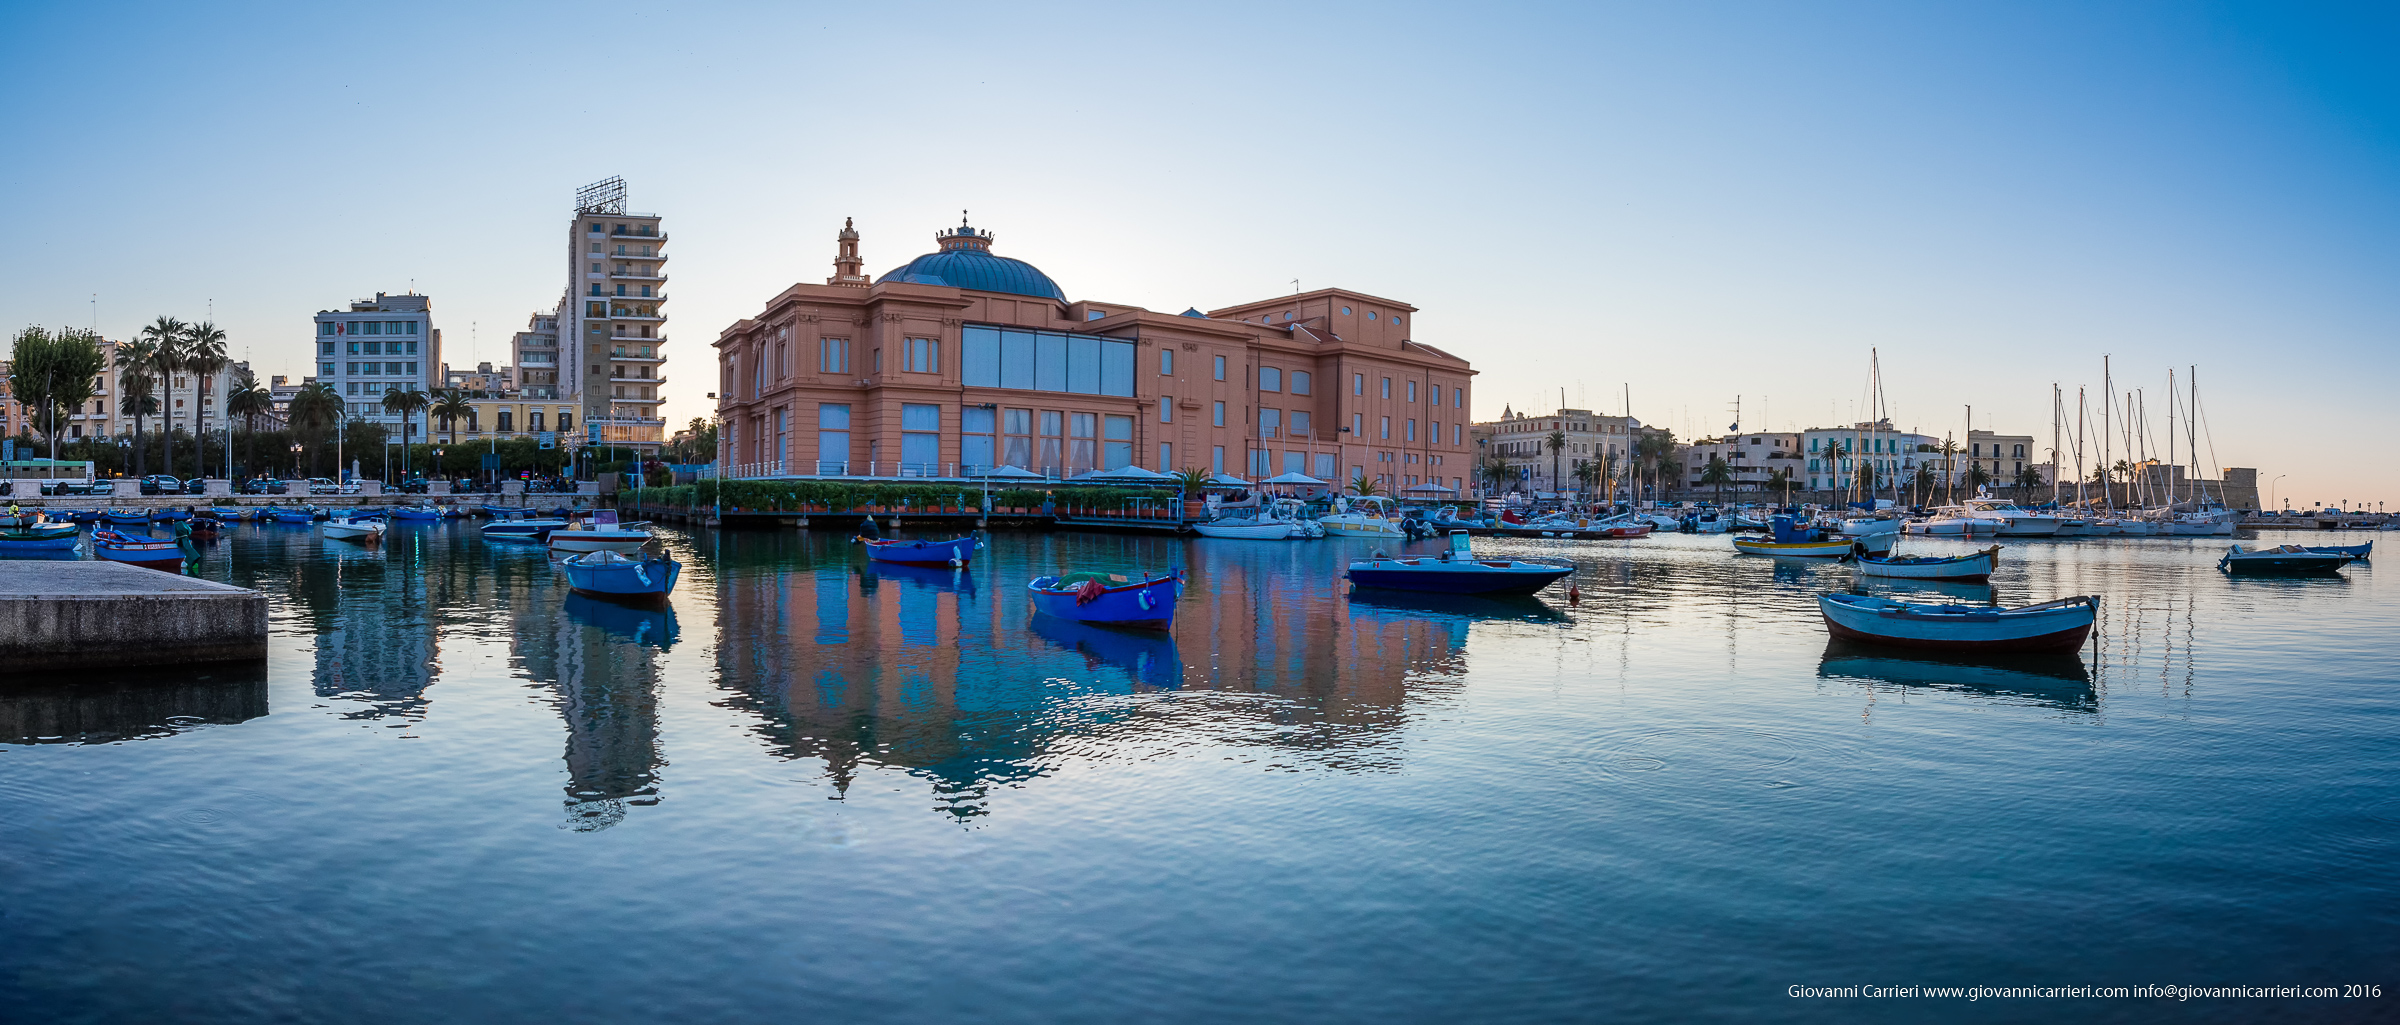 An overview of Bari seafront